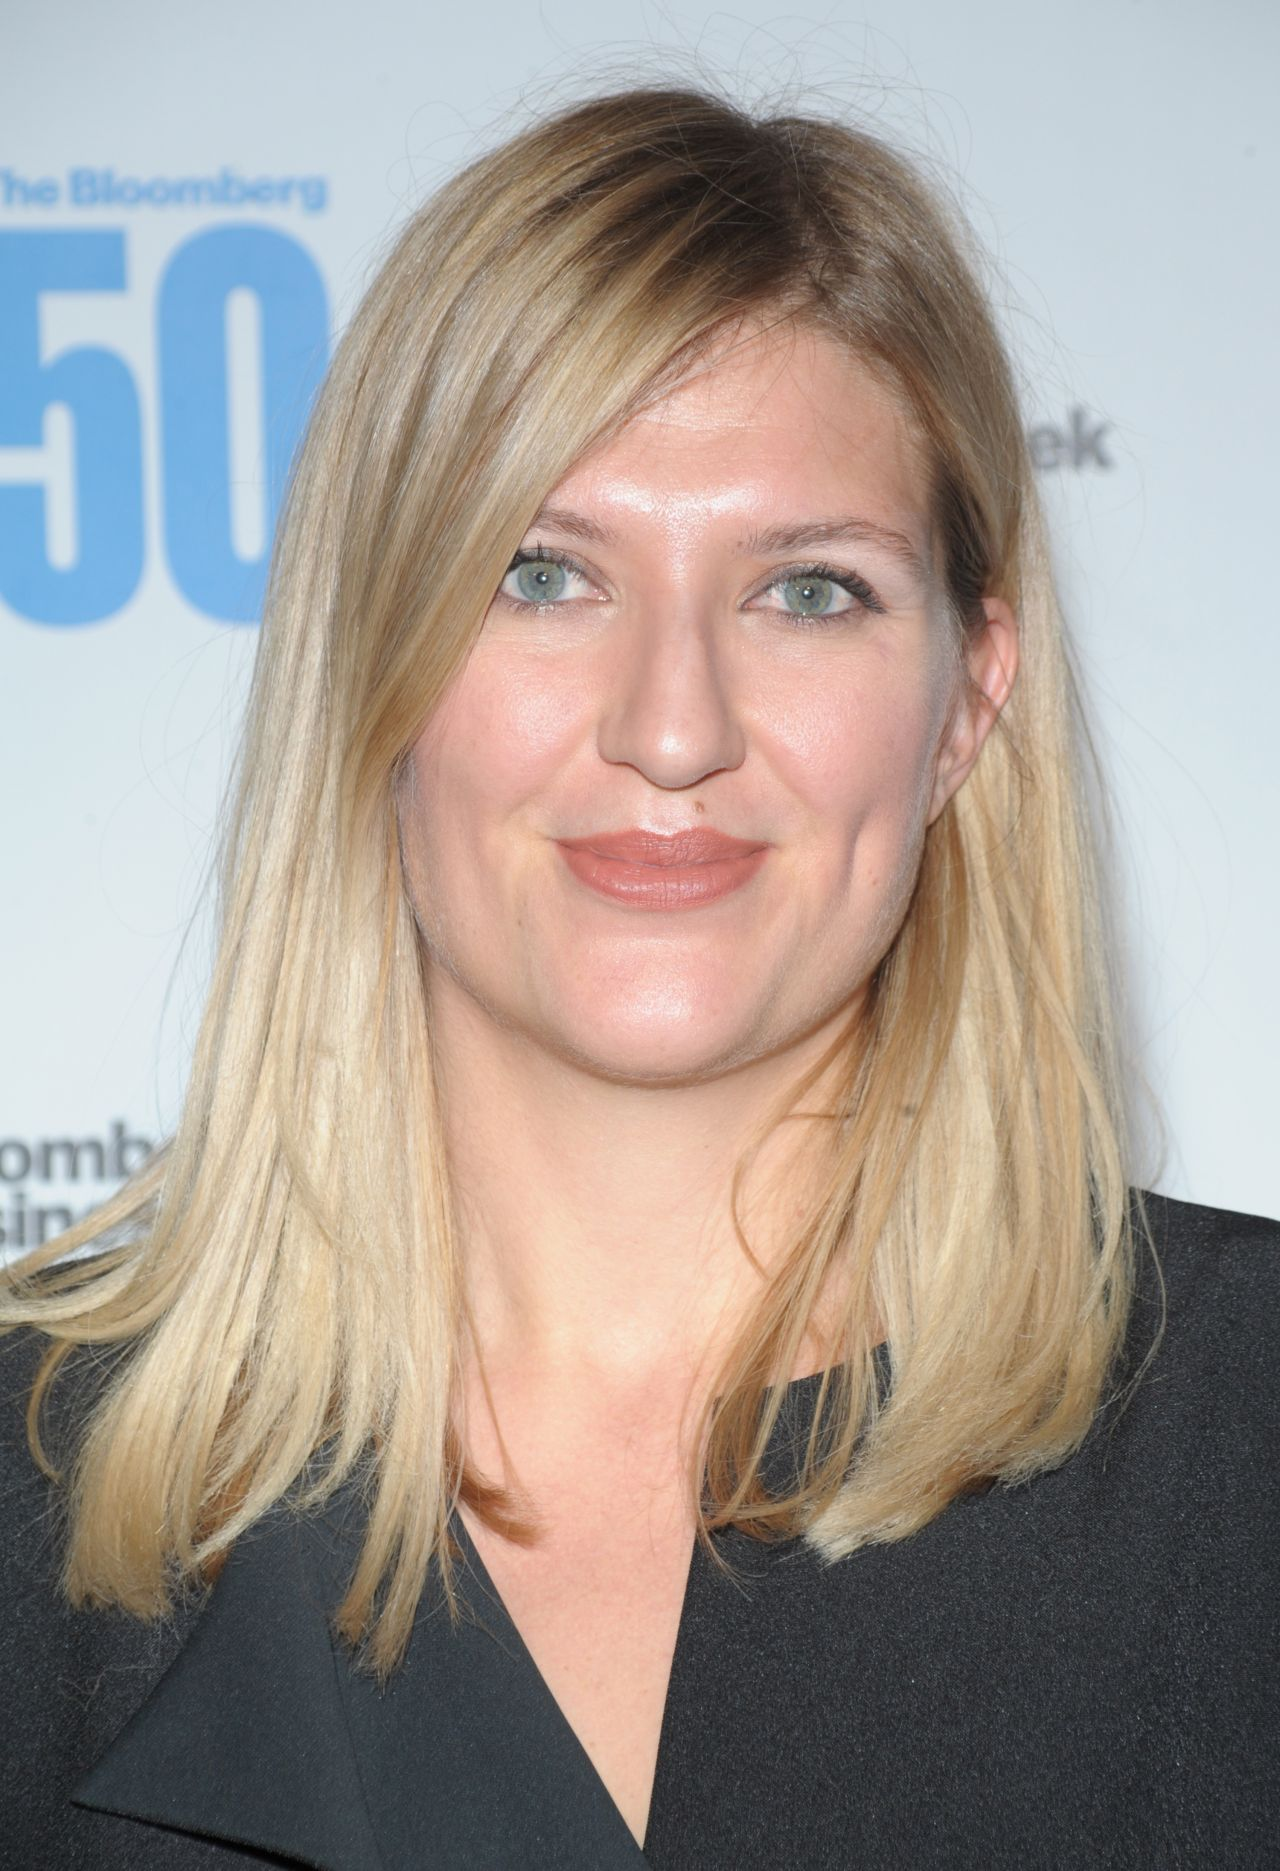 Beatrice Fihn Bloomberg 50 Awards In New York City